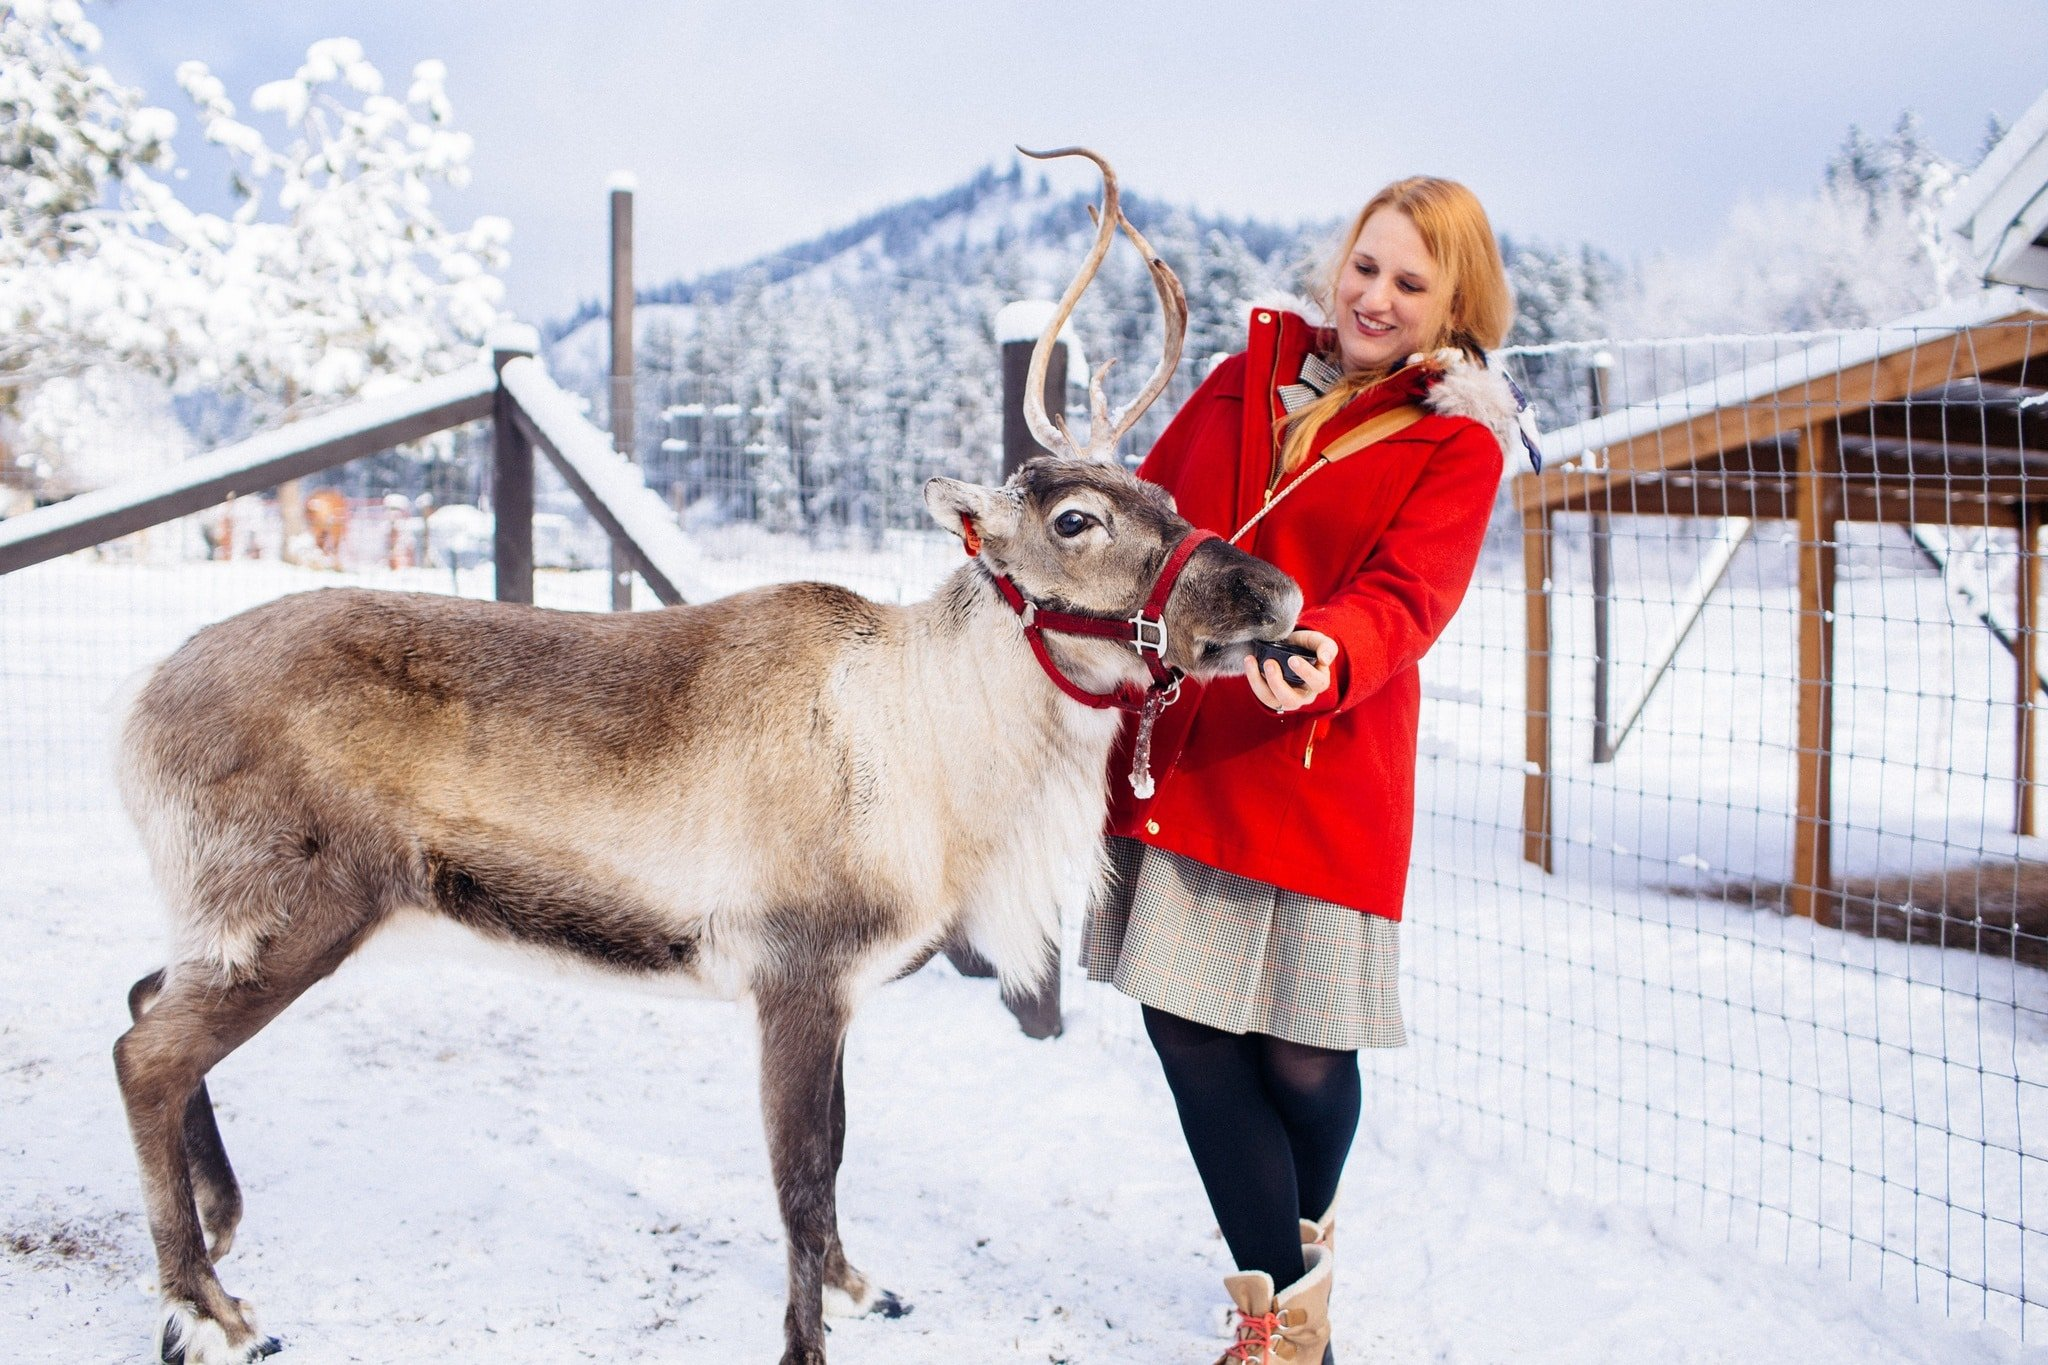 You Can Visit This Reindeer Farm In Washington